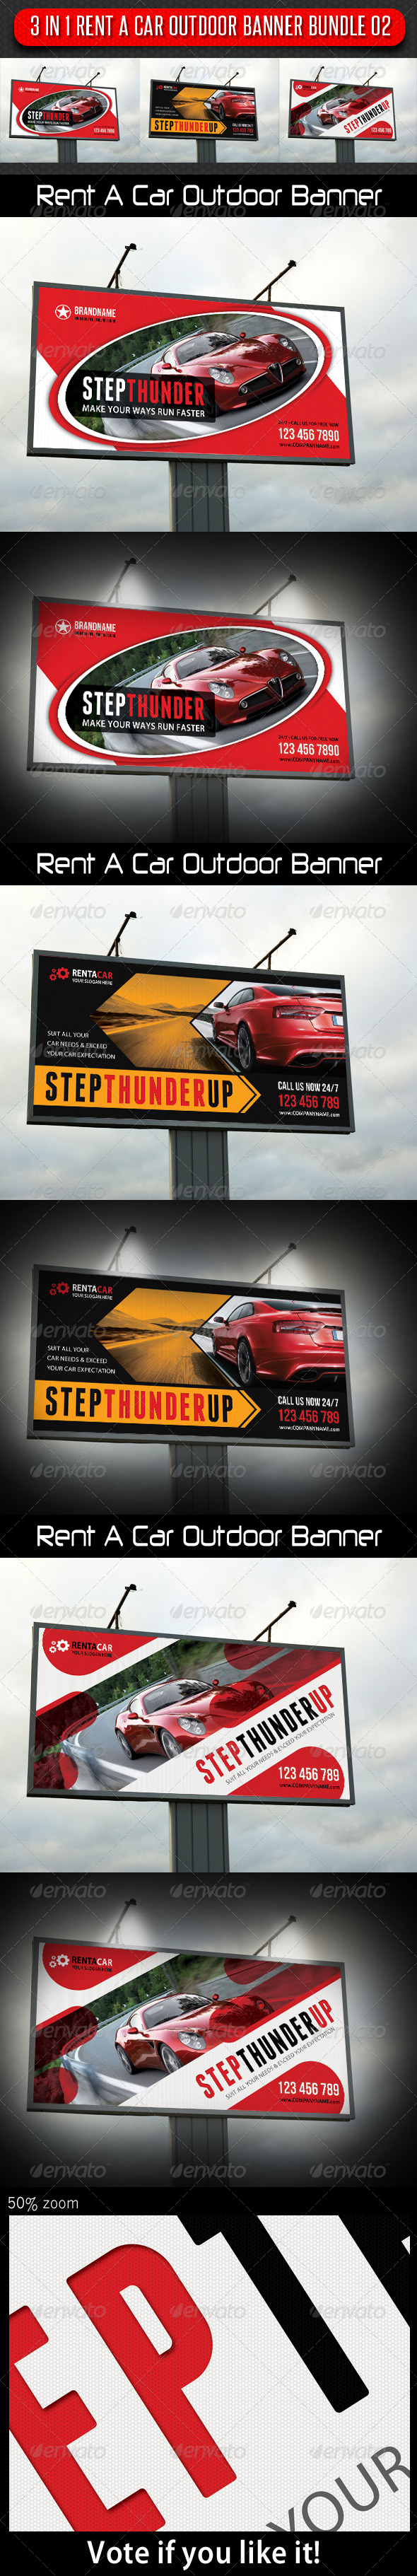 3 in 1 Rent A Car Outdoor Banner Bundle 02 - Signage Print Templates